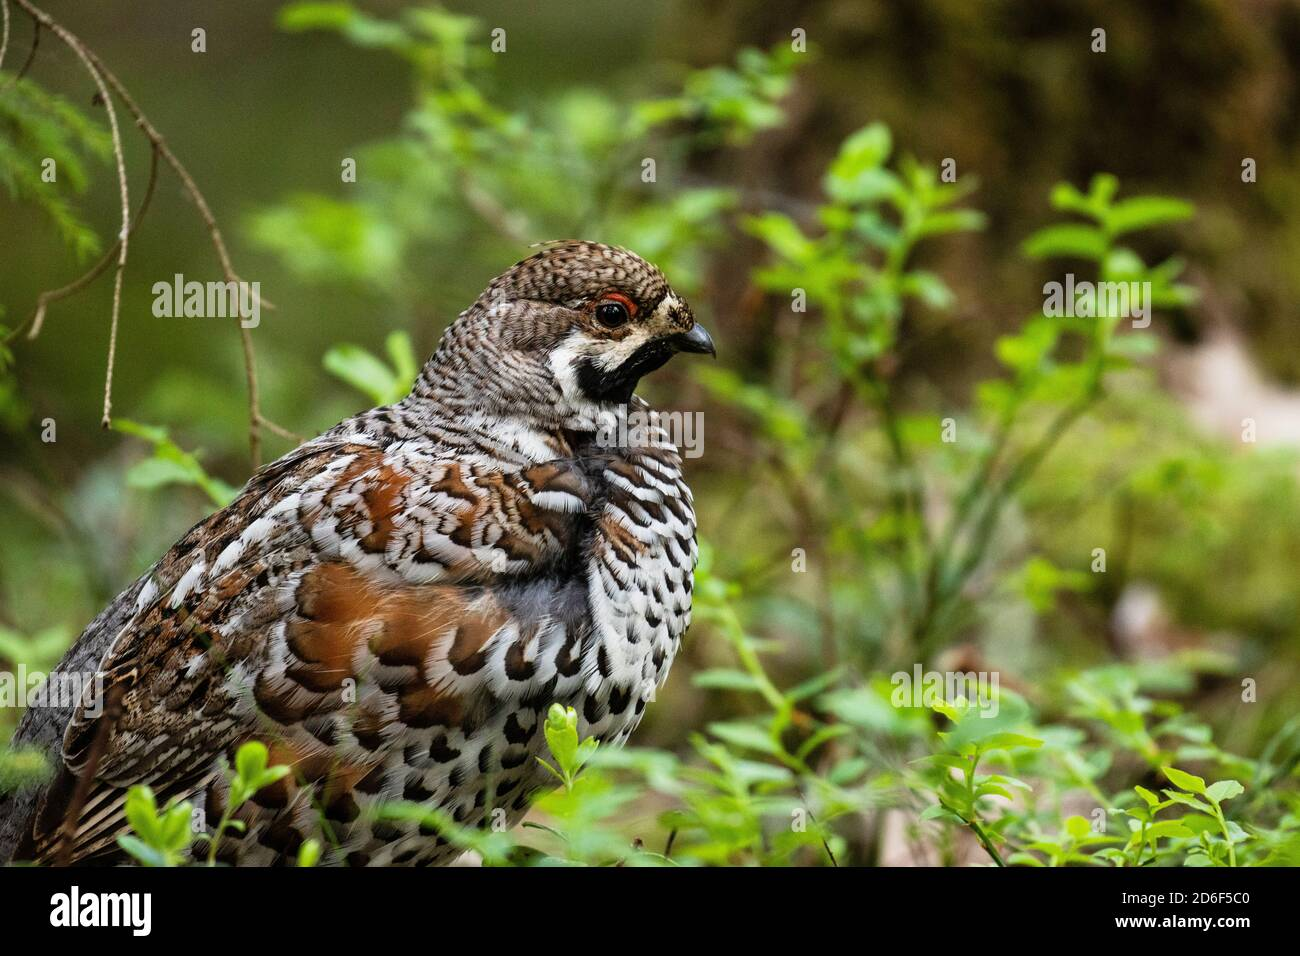 A male Hazel grouse, Tetrastes bonasia in a green, lush and old boreal forest during spring breeding season in Estonia, Northern Europe. Stock Photo